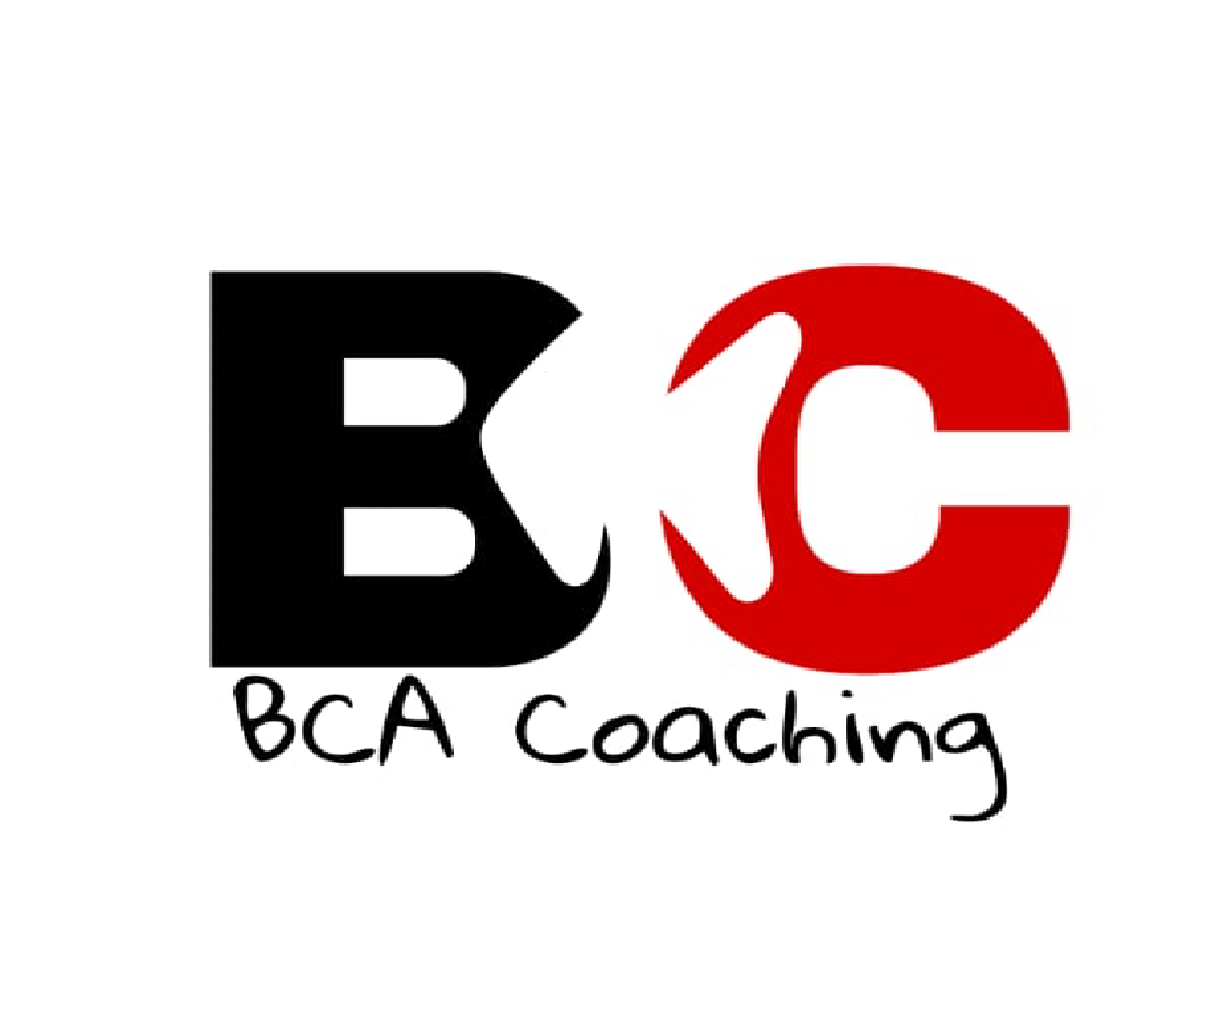 BCA coaching